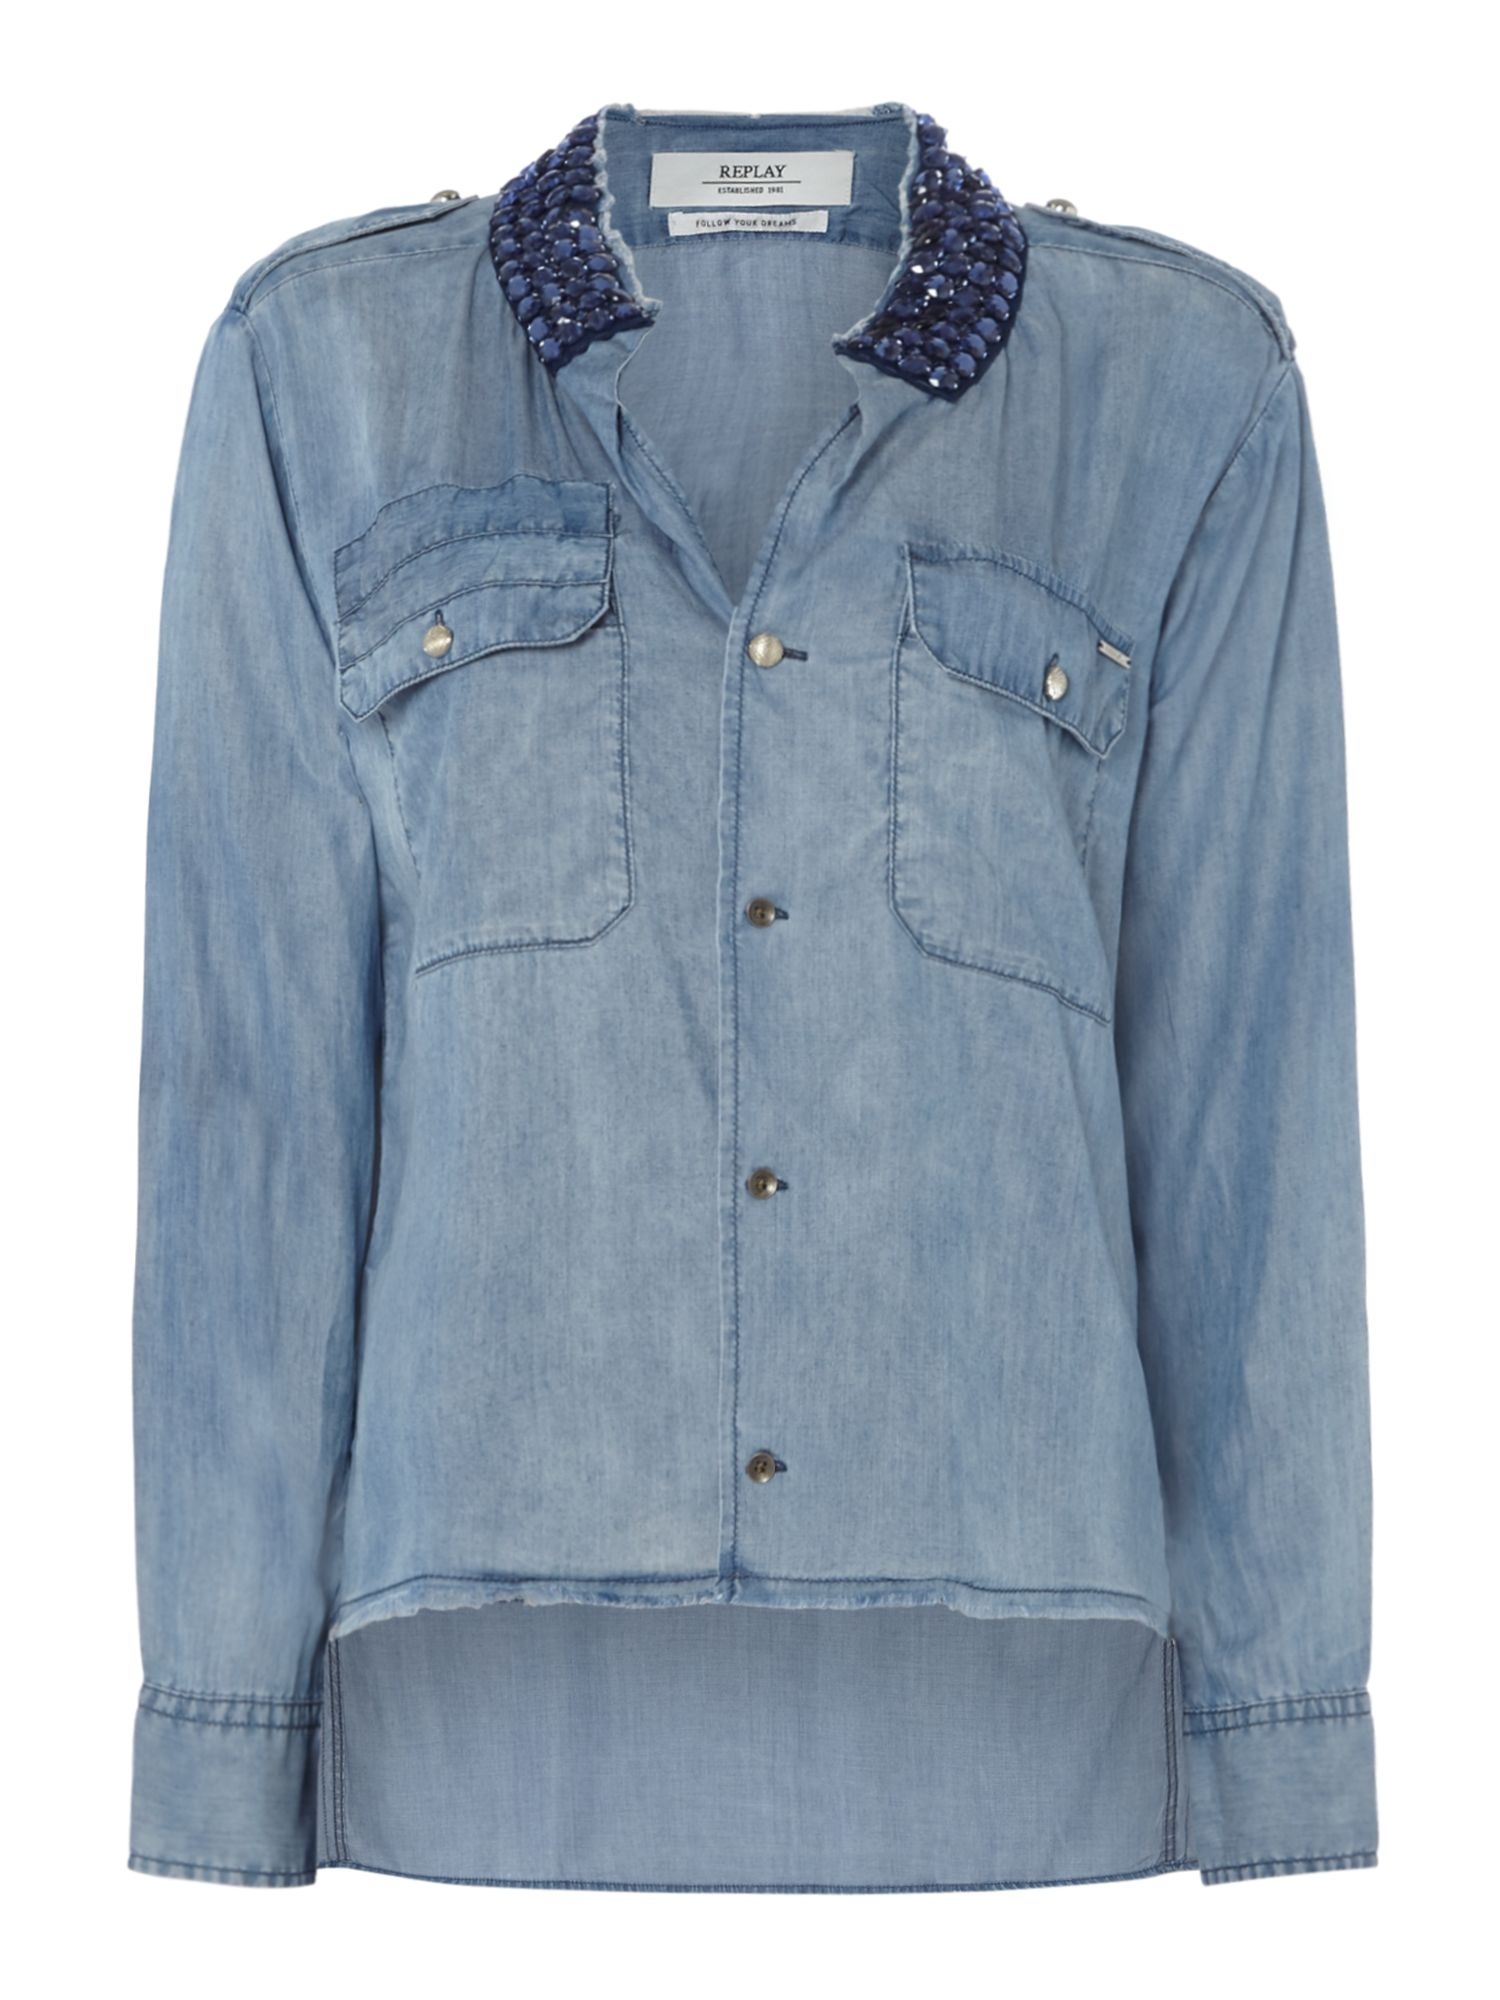 Replay Tencel Denim Shirt With Rhinestones, Blue